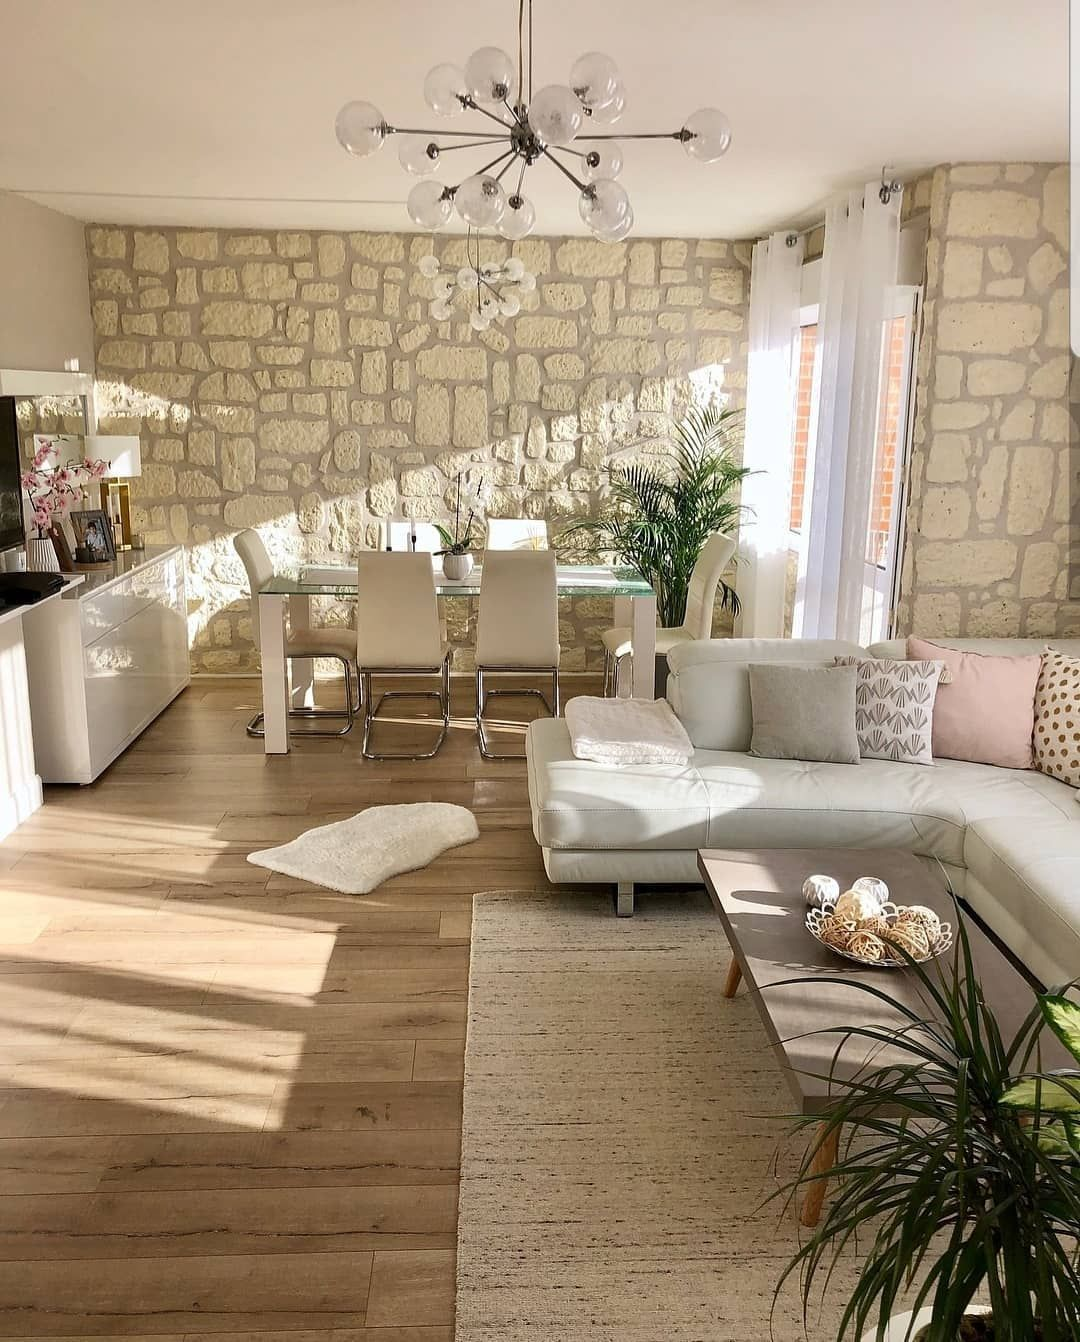 Top 70 Home Design Trends In 2020 Home Decor Home Inspire Me